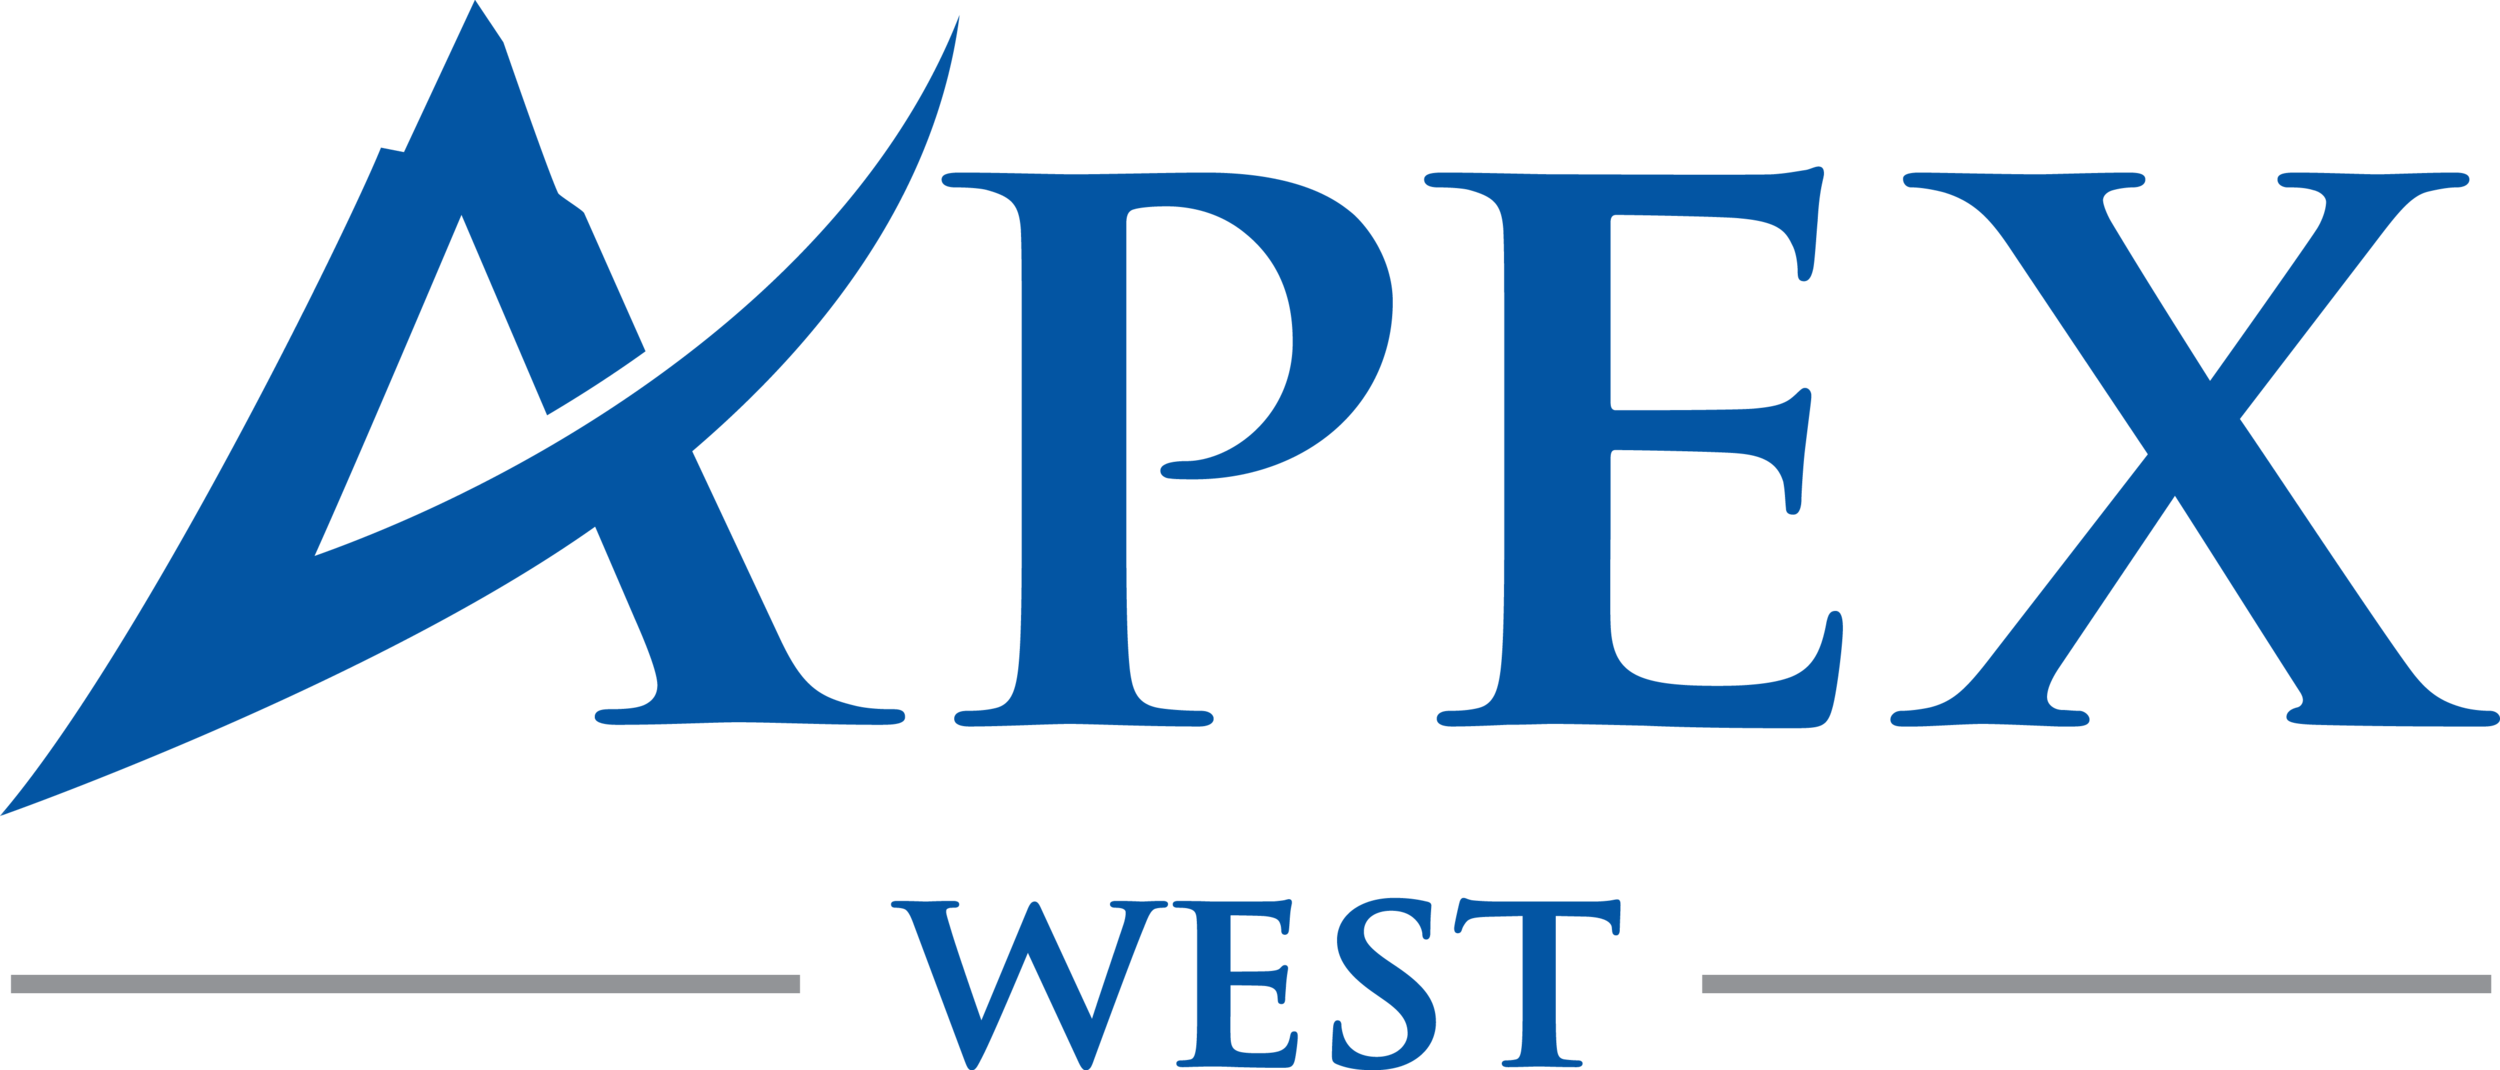 Apex West_Final logo.png